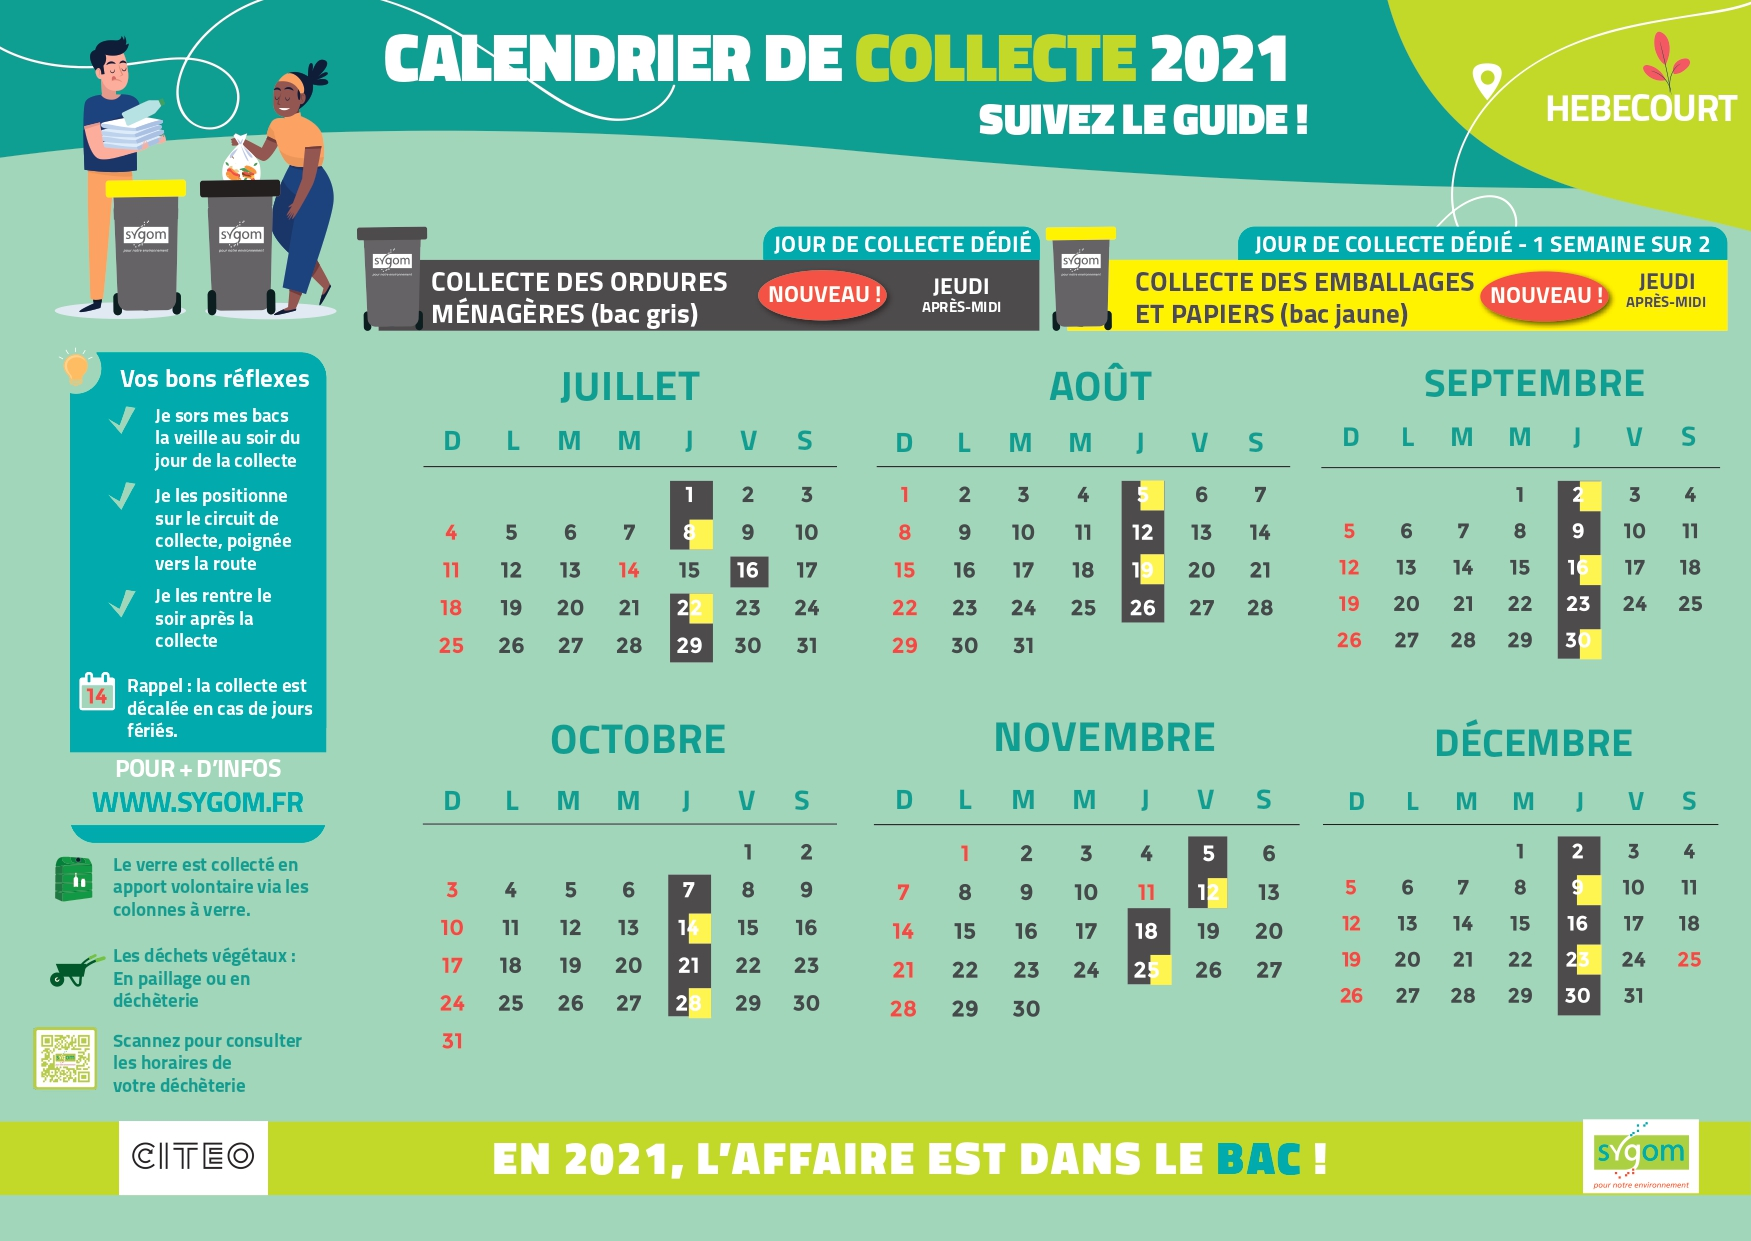 Sygom calendrier HEBECOURT_page-0001.jpg